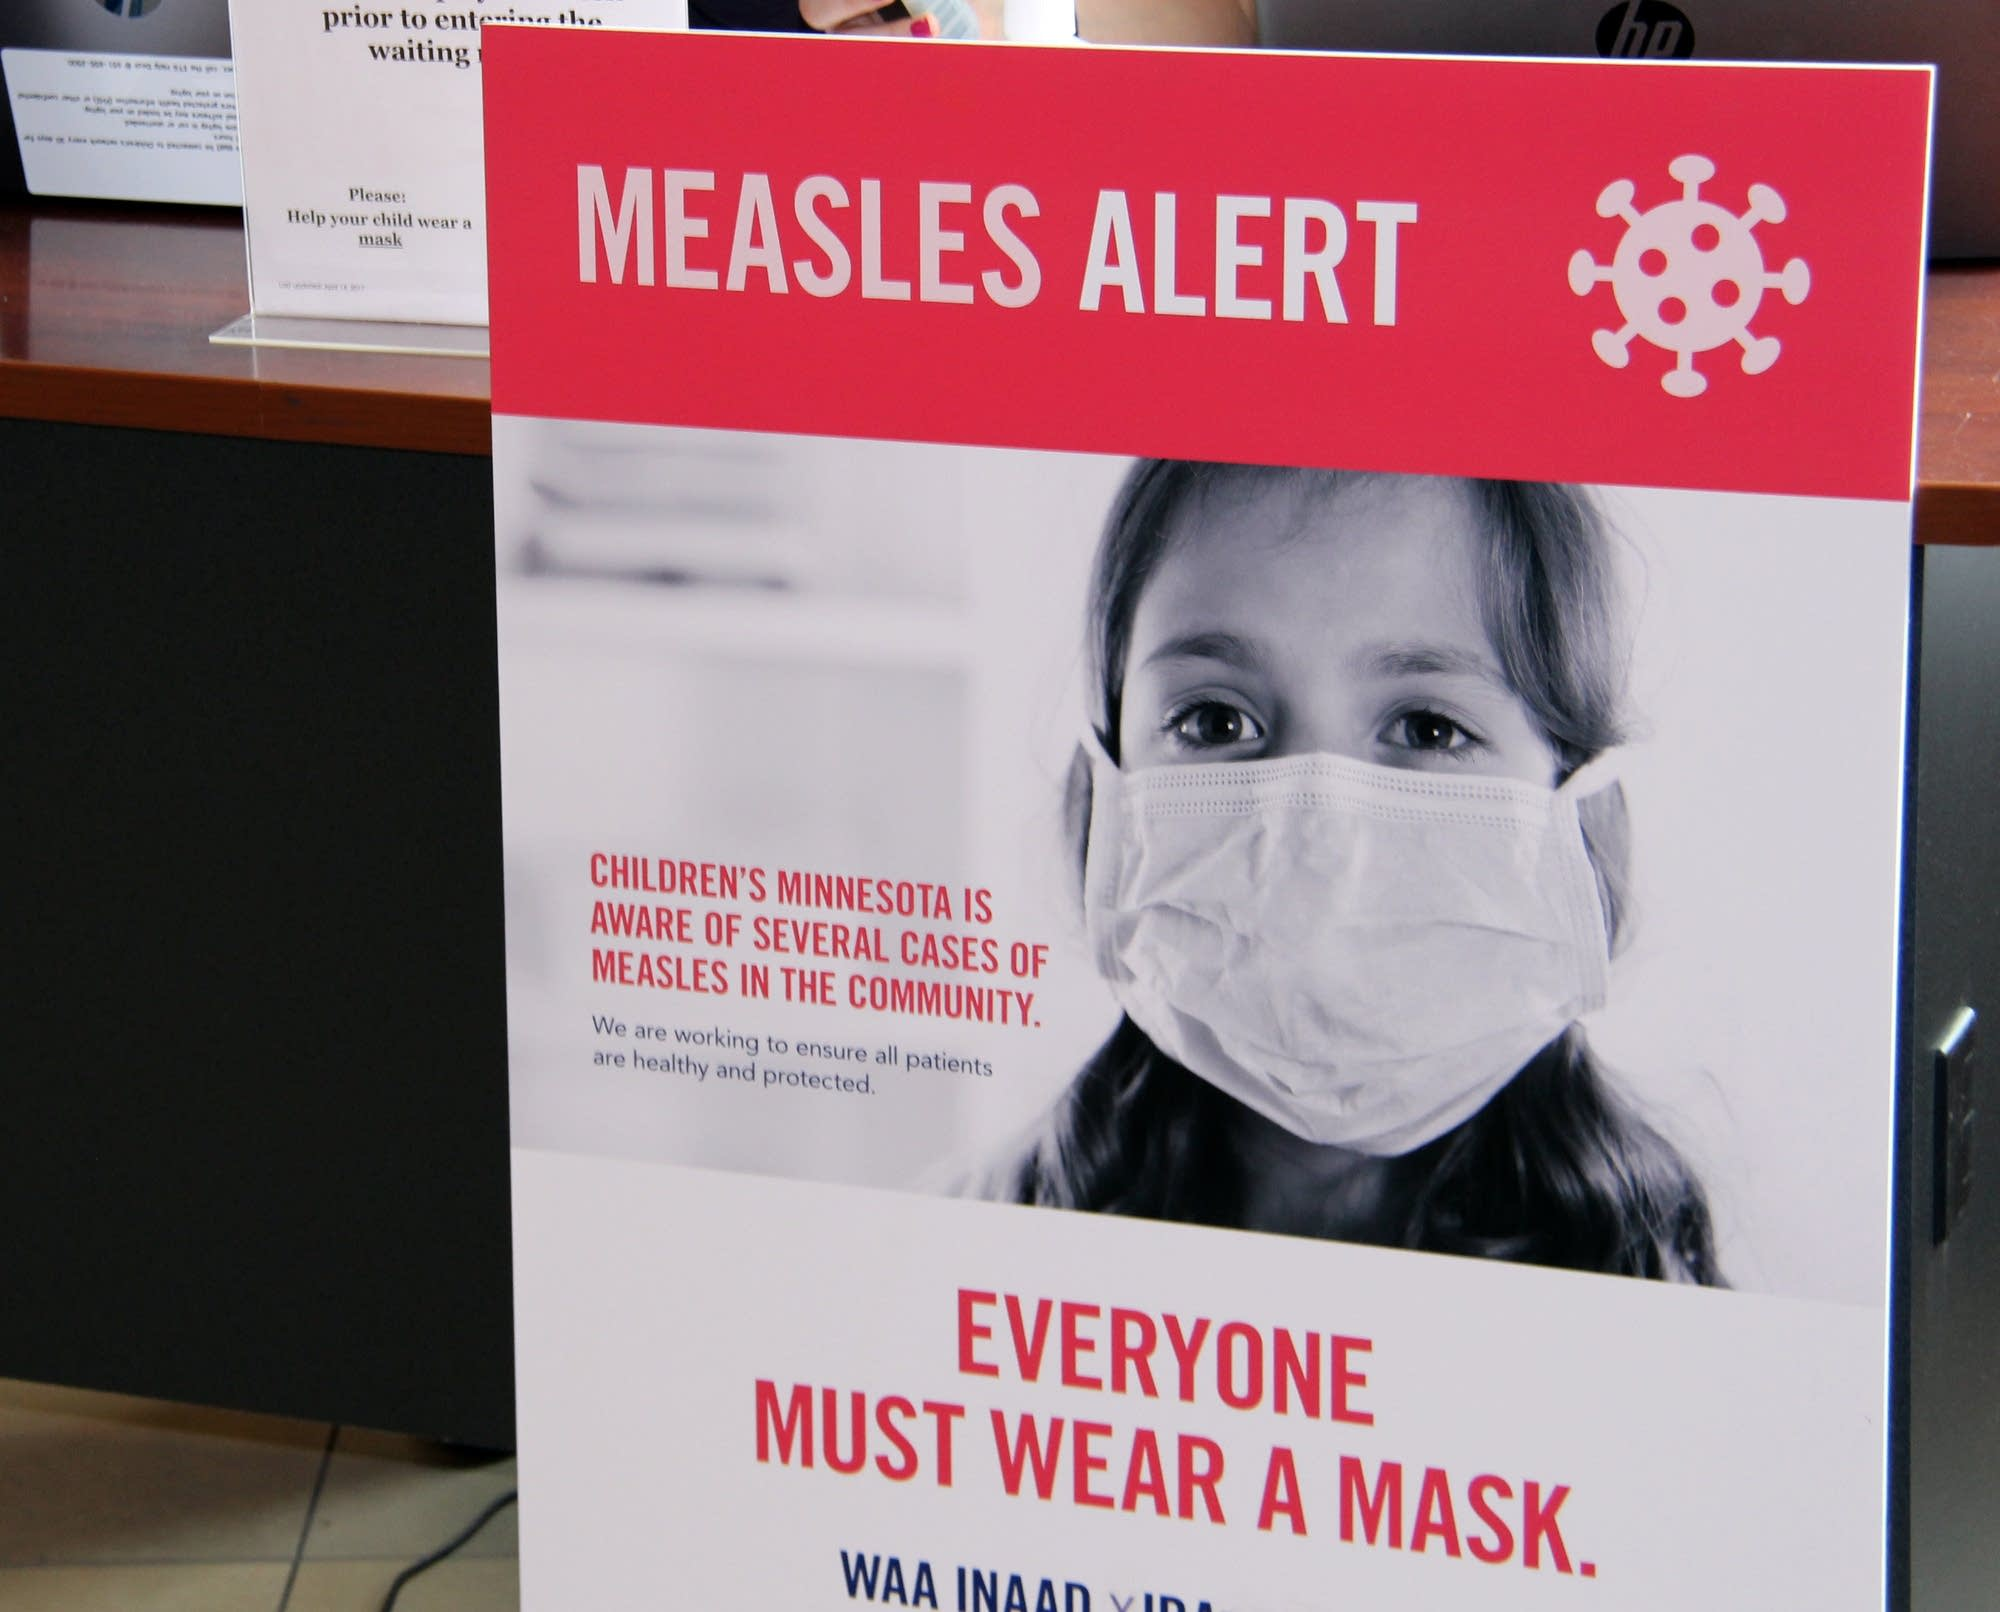 Health incident command team works to prevent measles spread